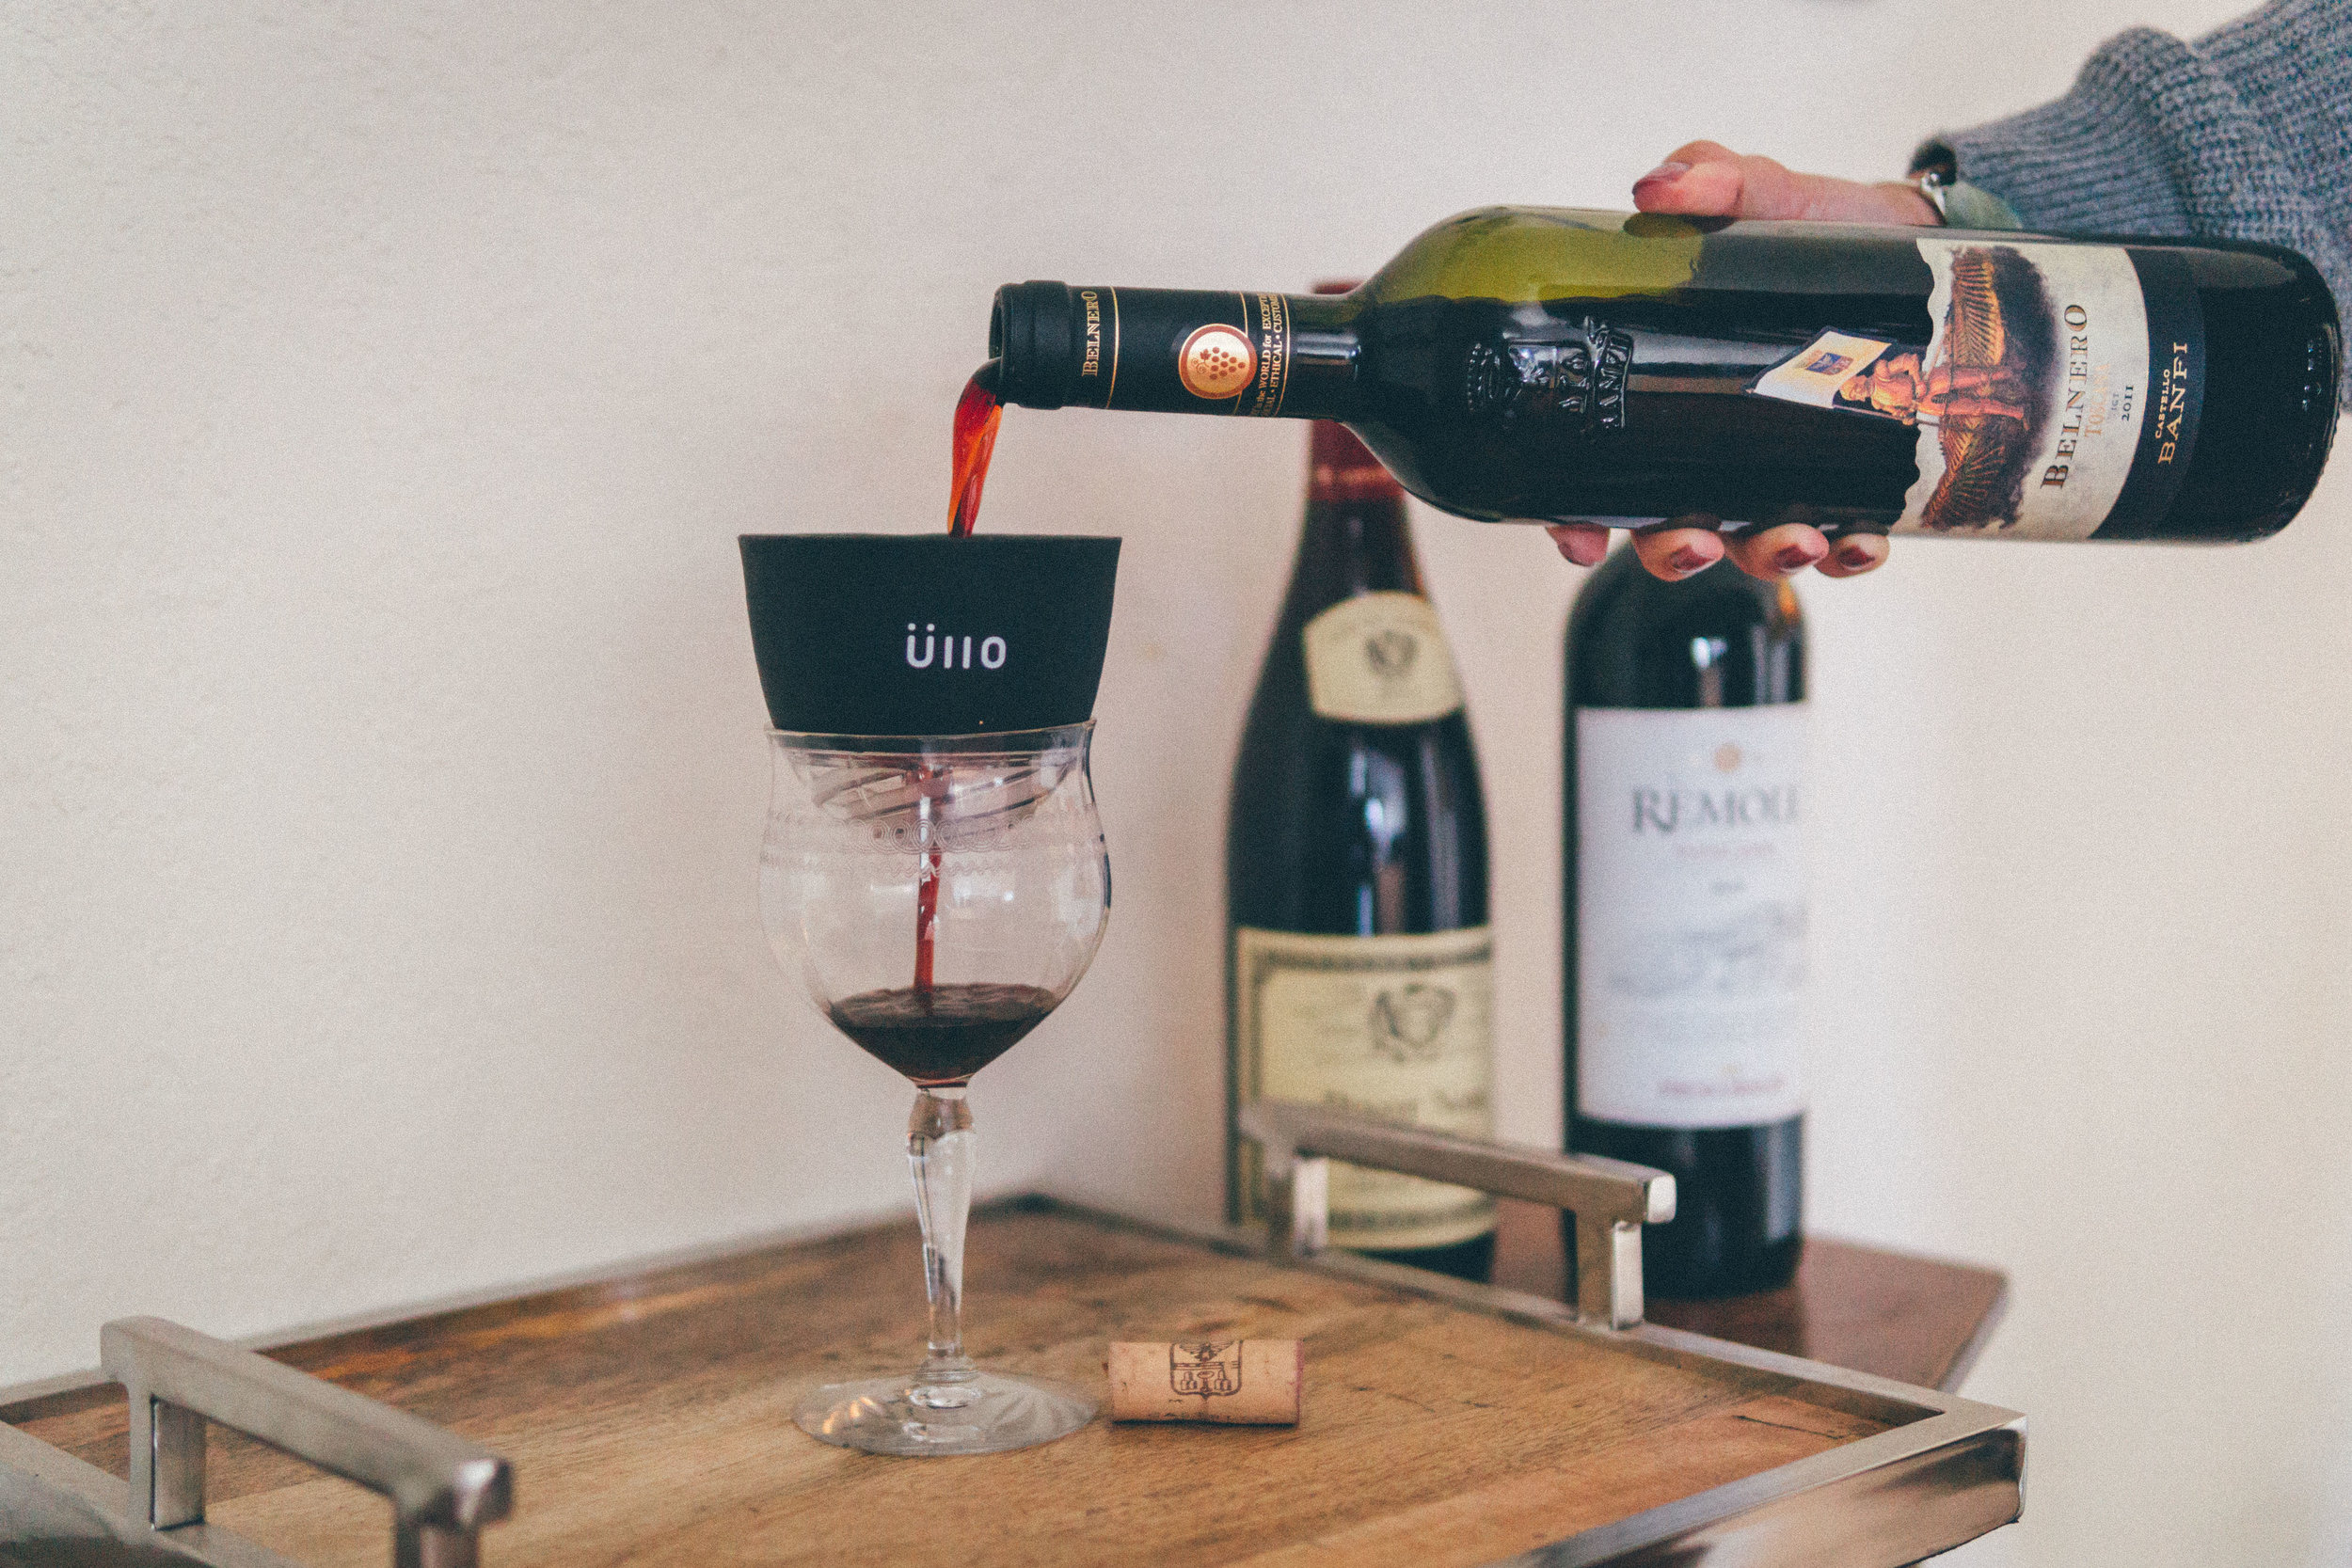 Üllo Wine Purifier - Wine PurifierTreat yourself to a full glass of wine, without the headache. A revolutionary wine purifier that uses Selective Sulfite Capture™ technology to filter sulfites and sediments, bringing wine back to its natural state.